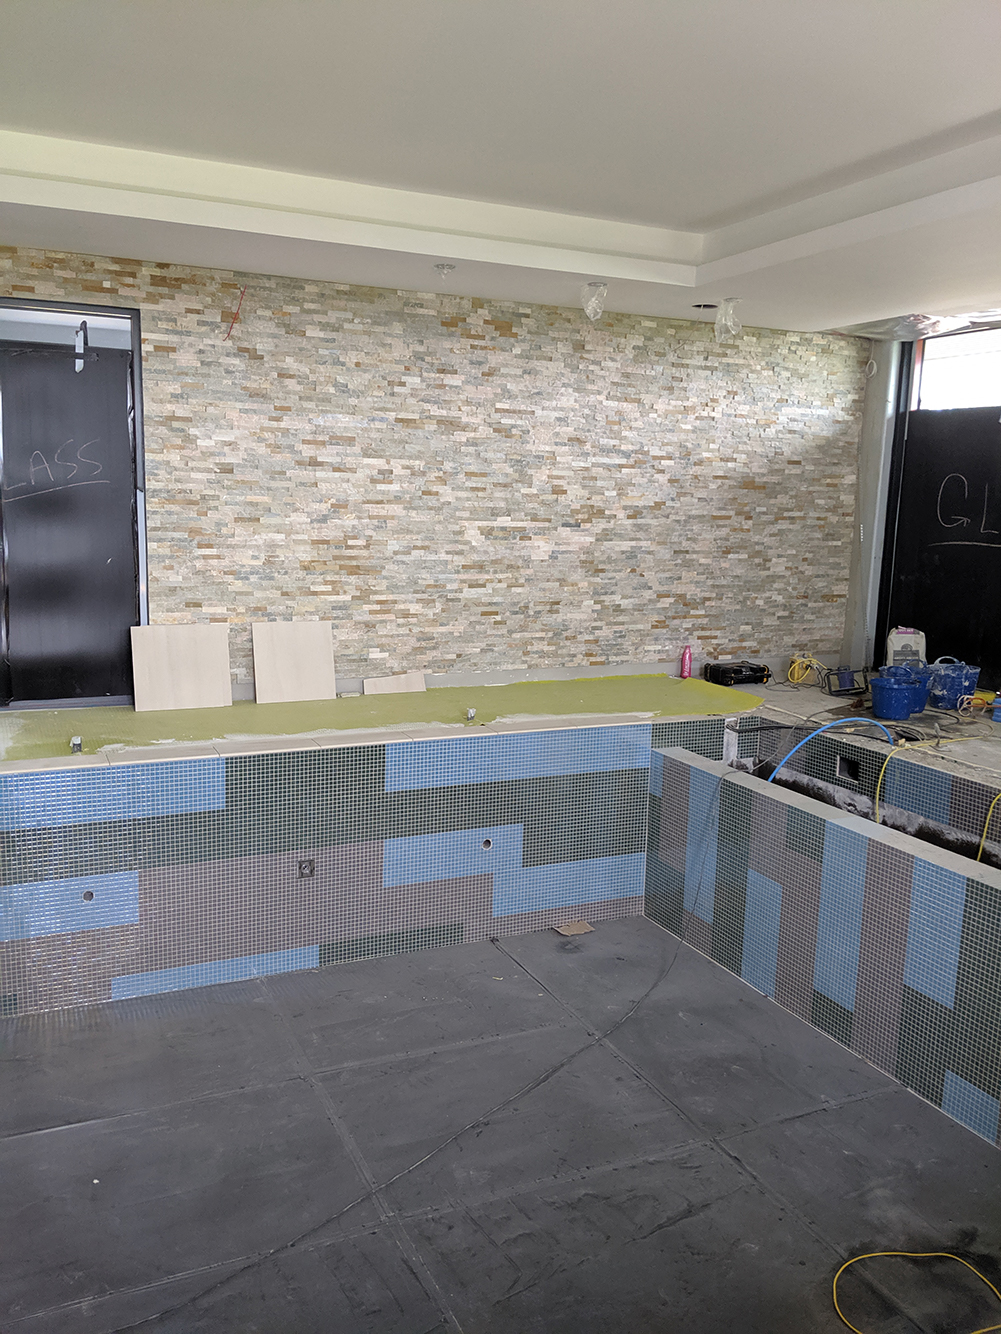 A photo showing the split face tile on the wall, with the pool and floor tiles with it.